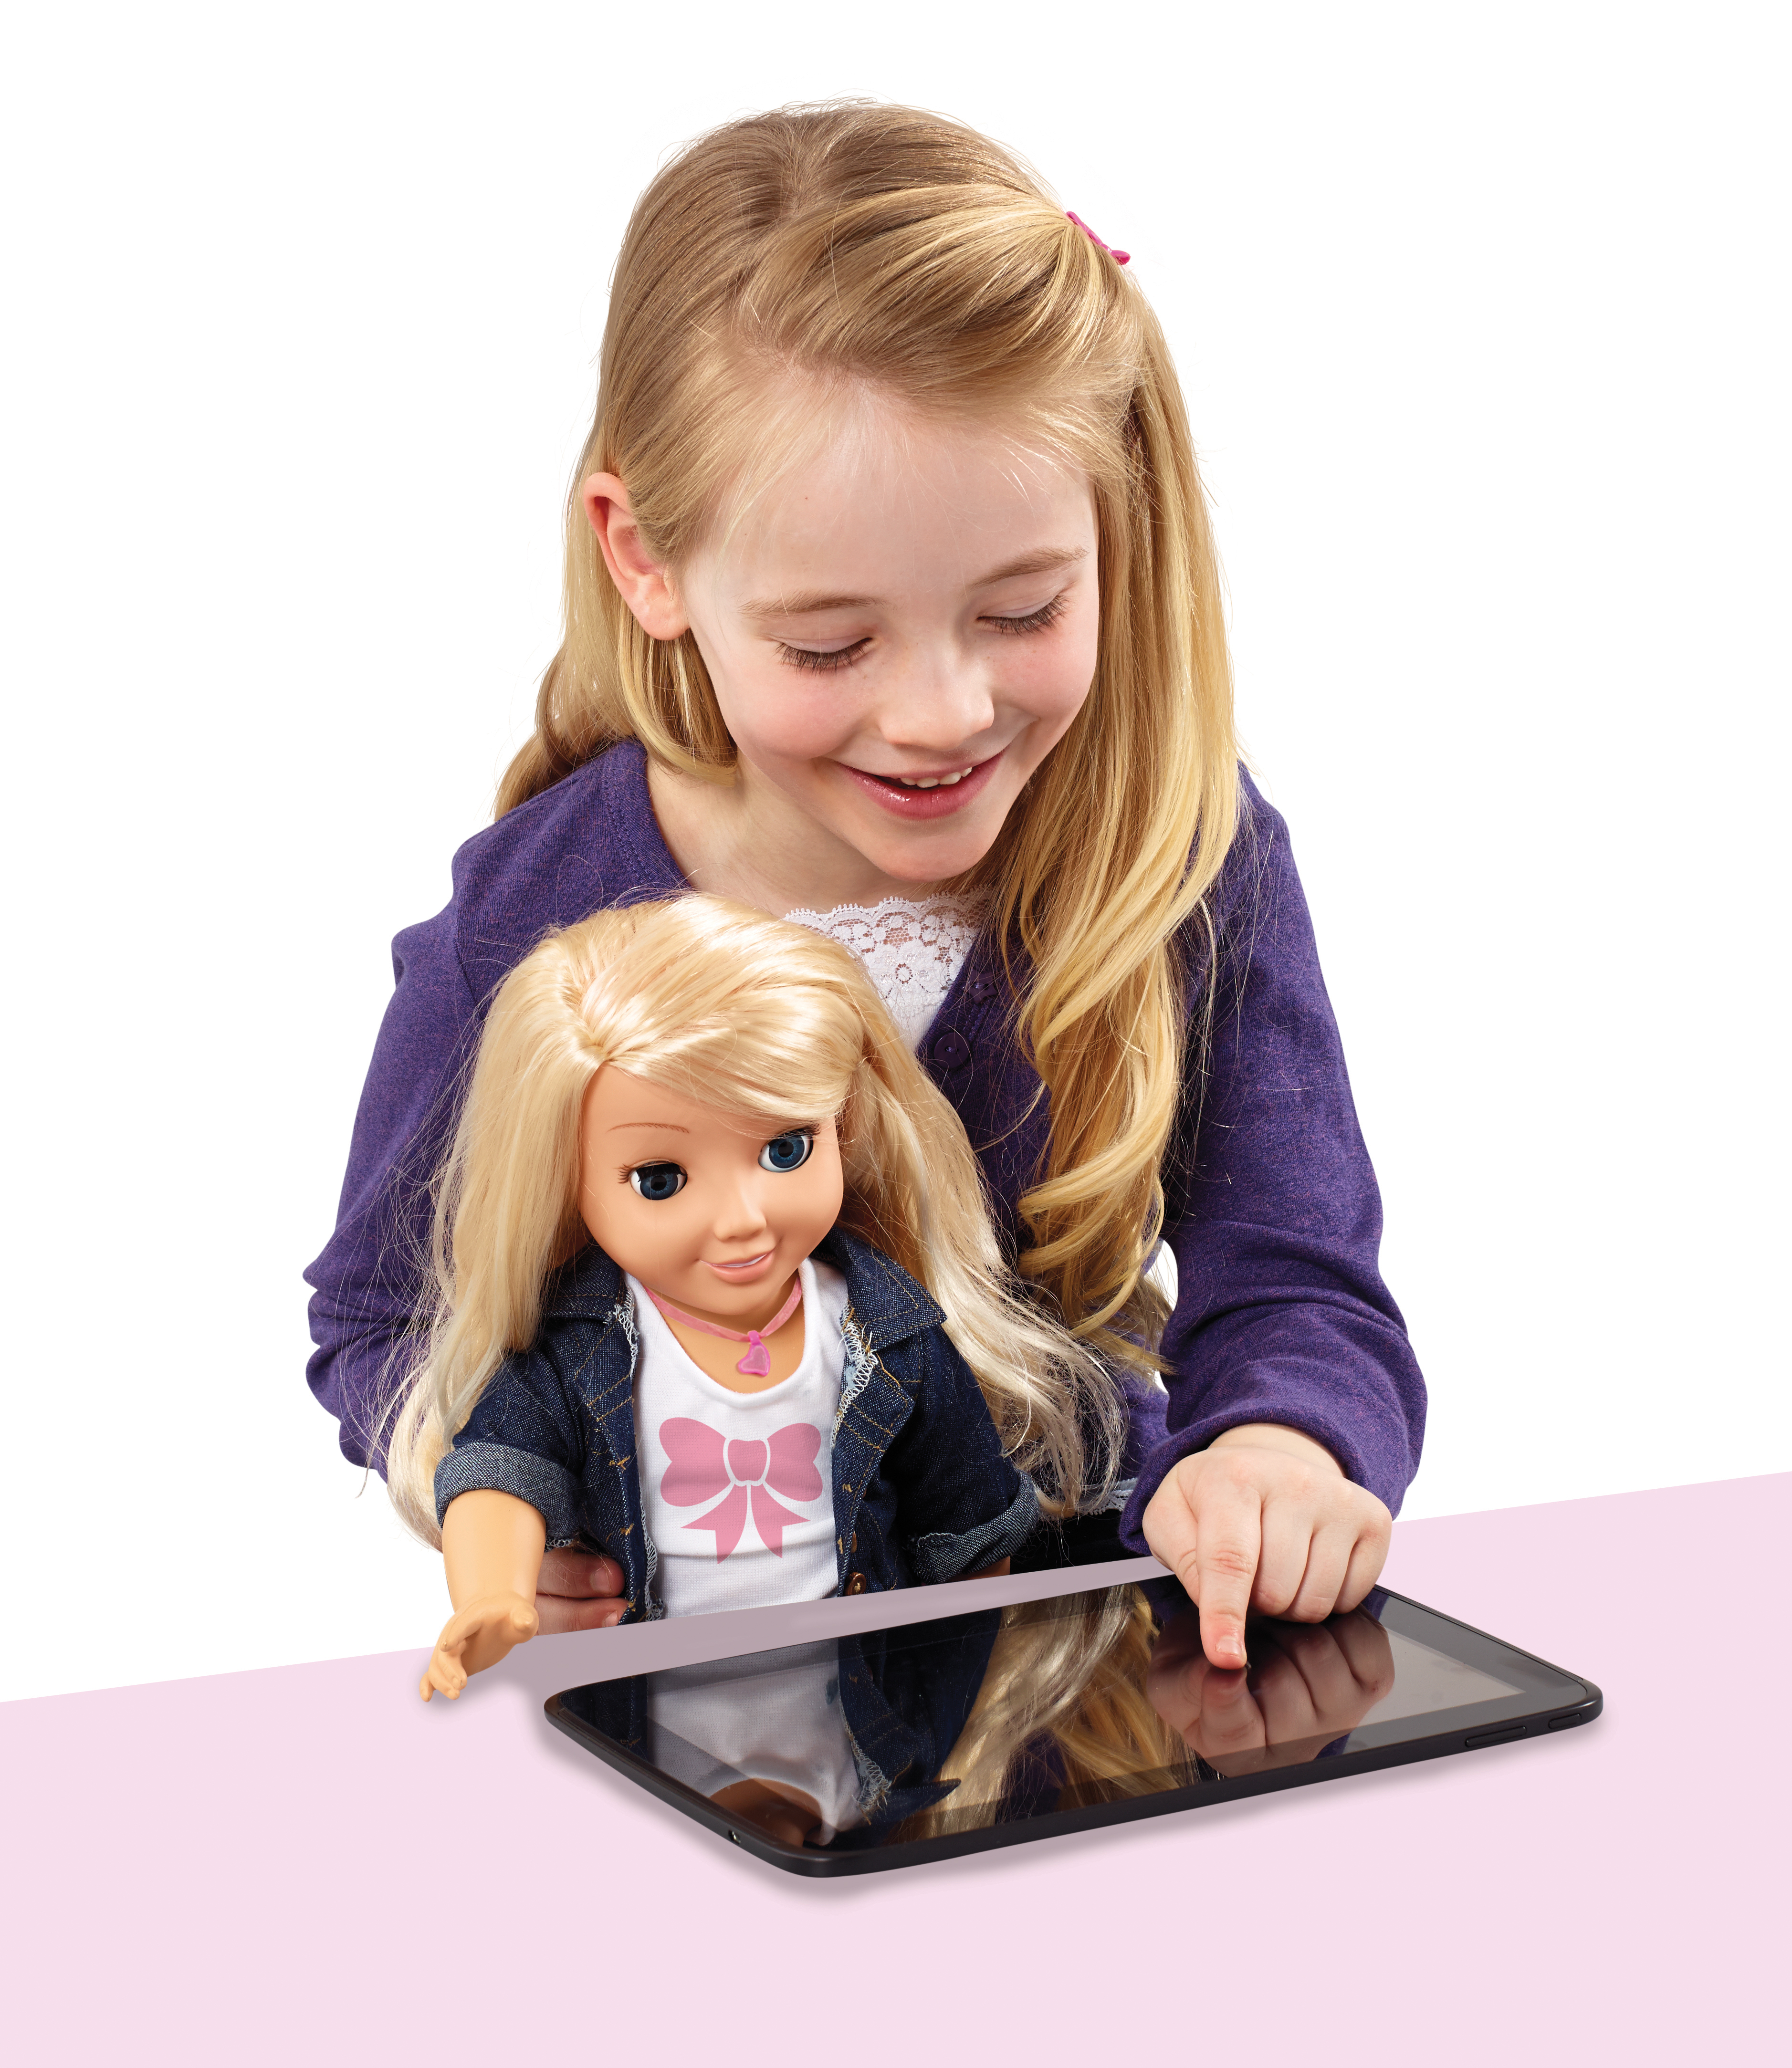 PR launch of the world's first internet-connected doll